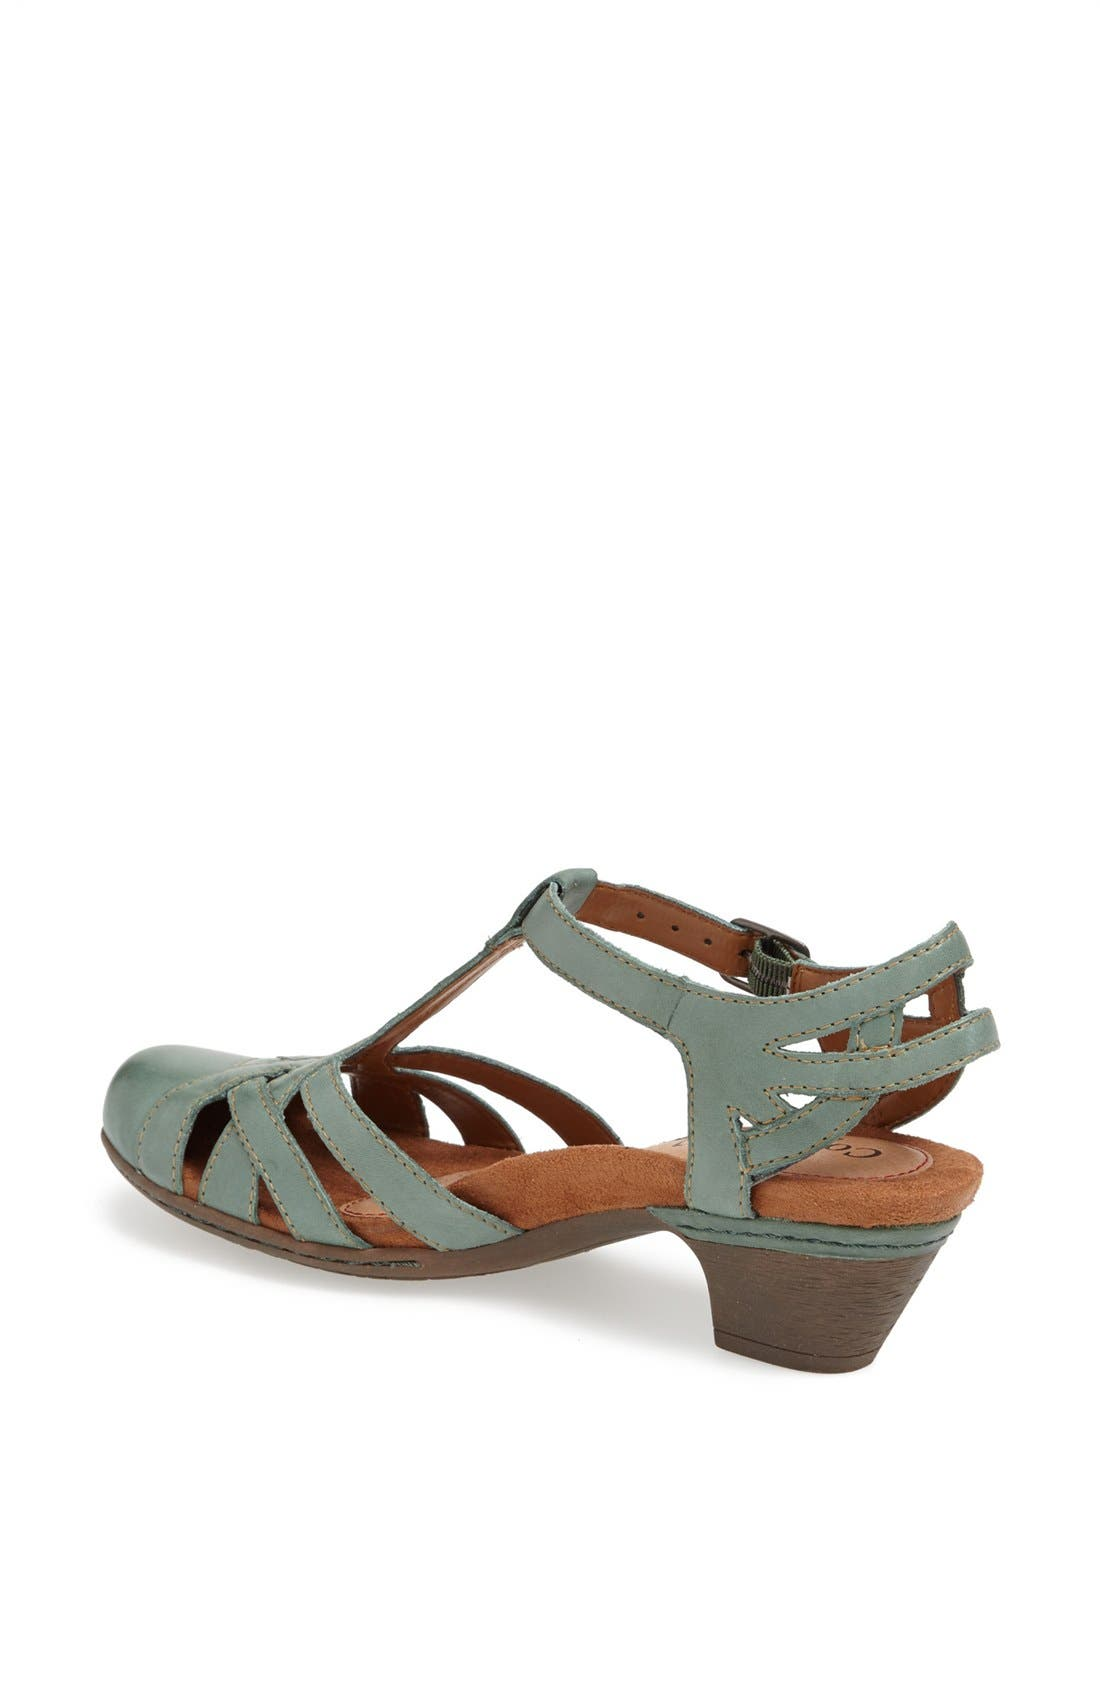 'Aubrey' Sandal,                             Alternate thumbnail 28, color,